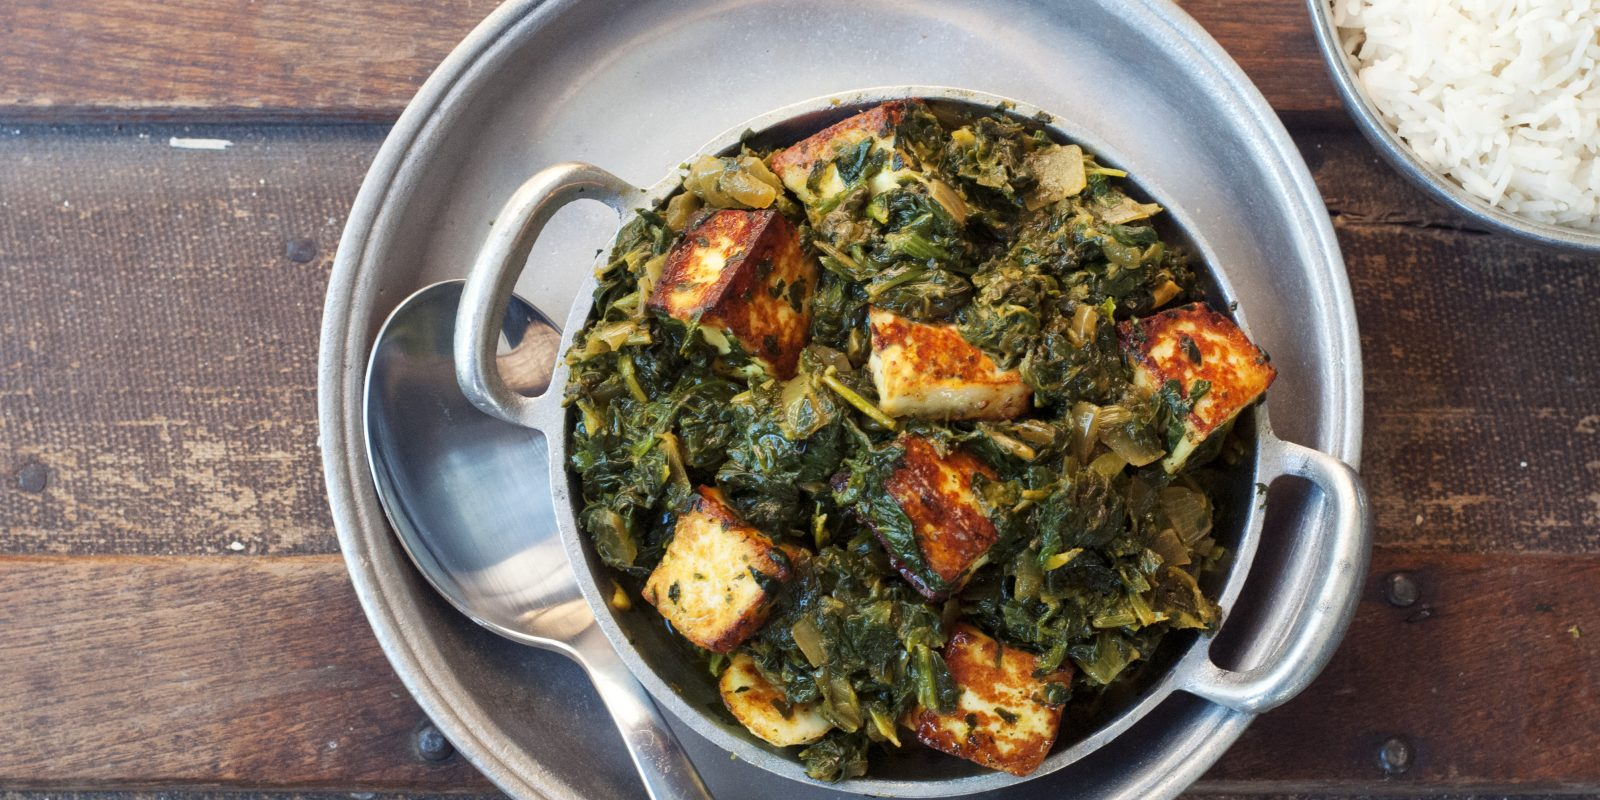 Traditional Saag Paneer Andrew Zimmern